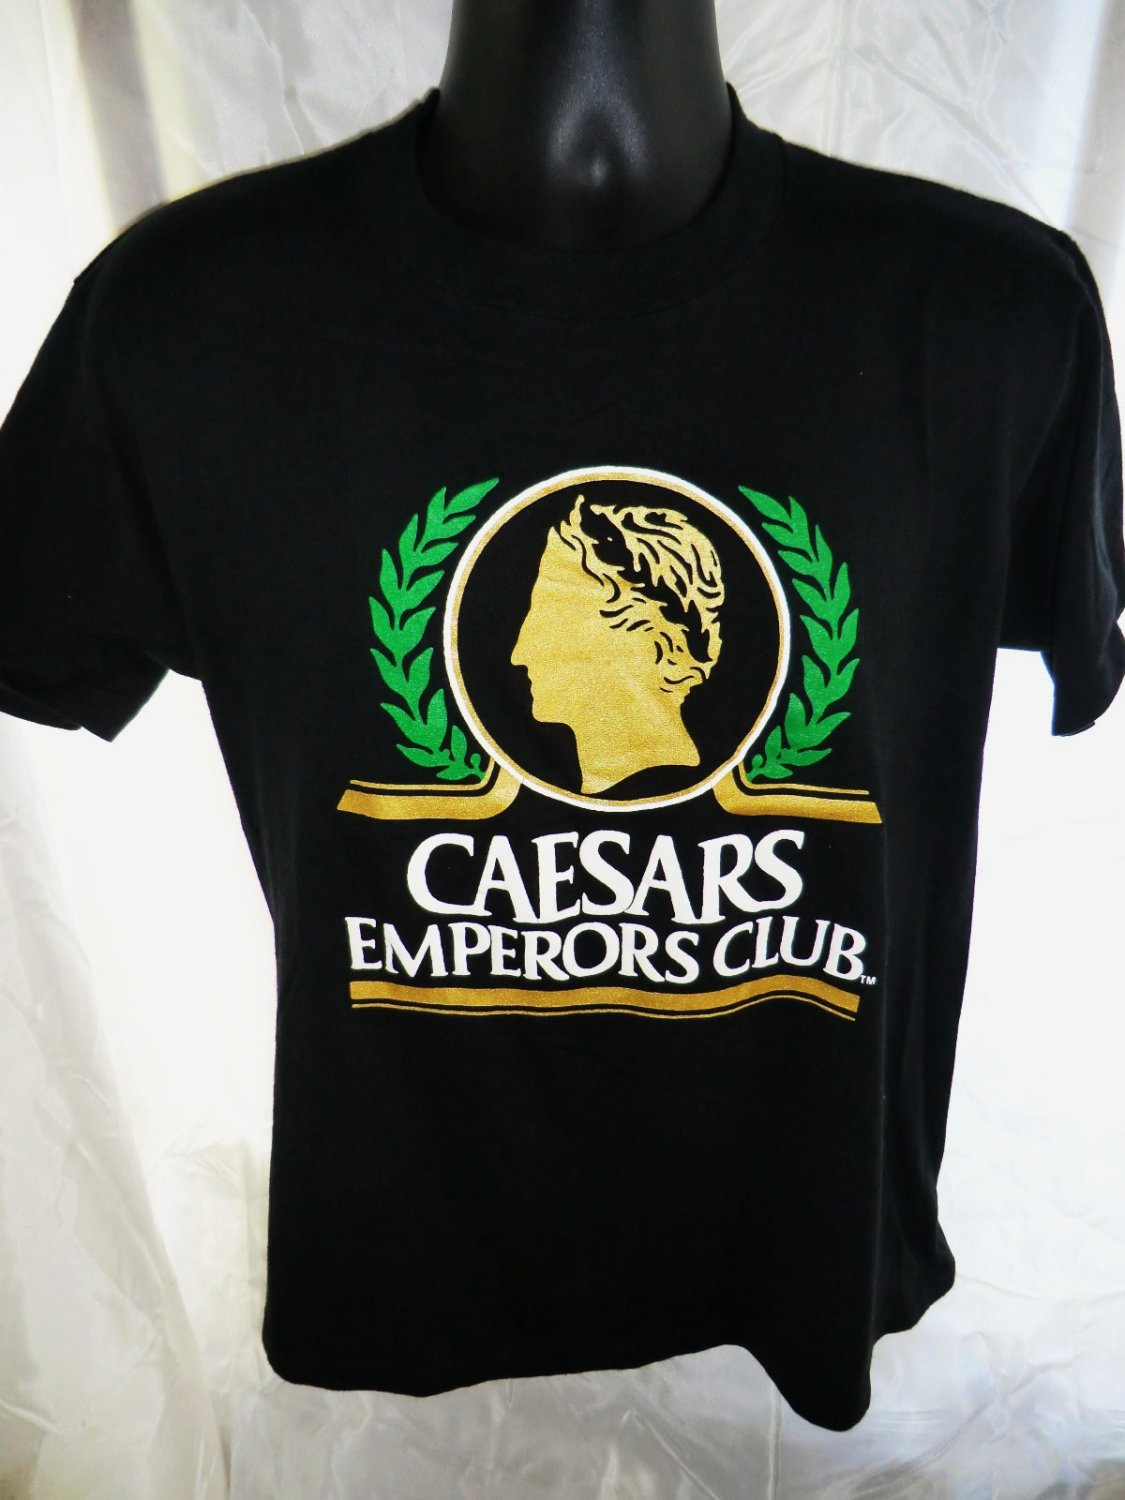 SOLD! Vintage Caesars Palace Emperors Club T-Shirt Size Medium or Large